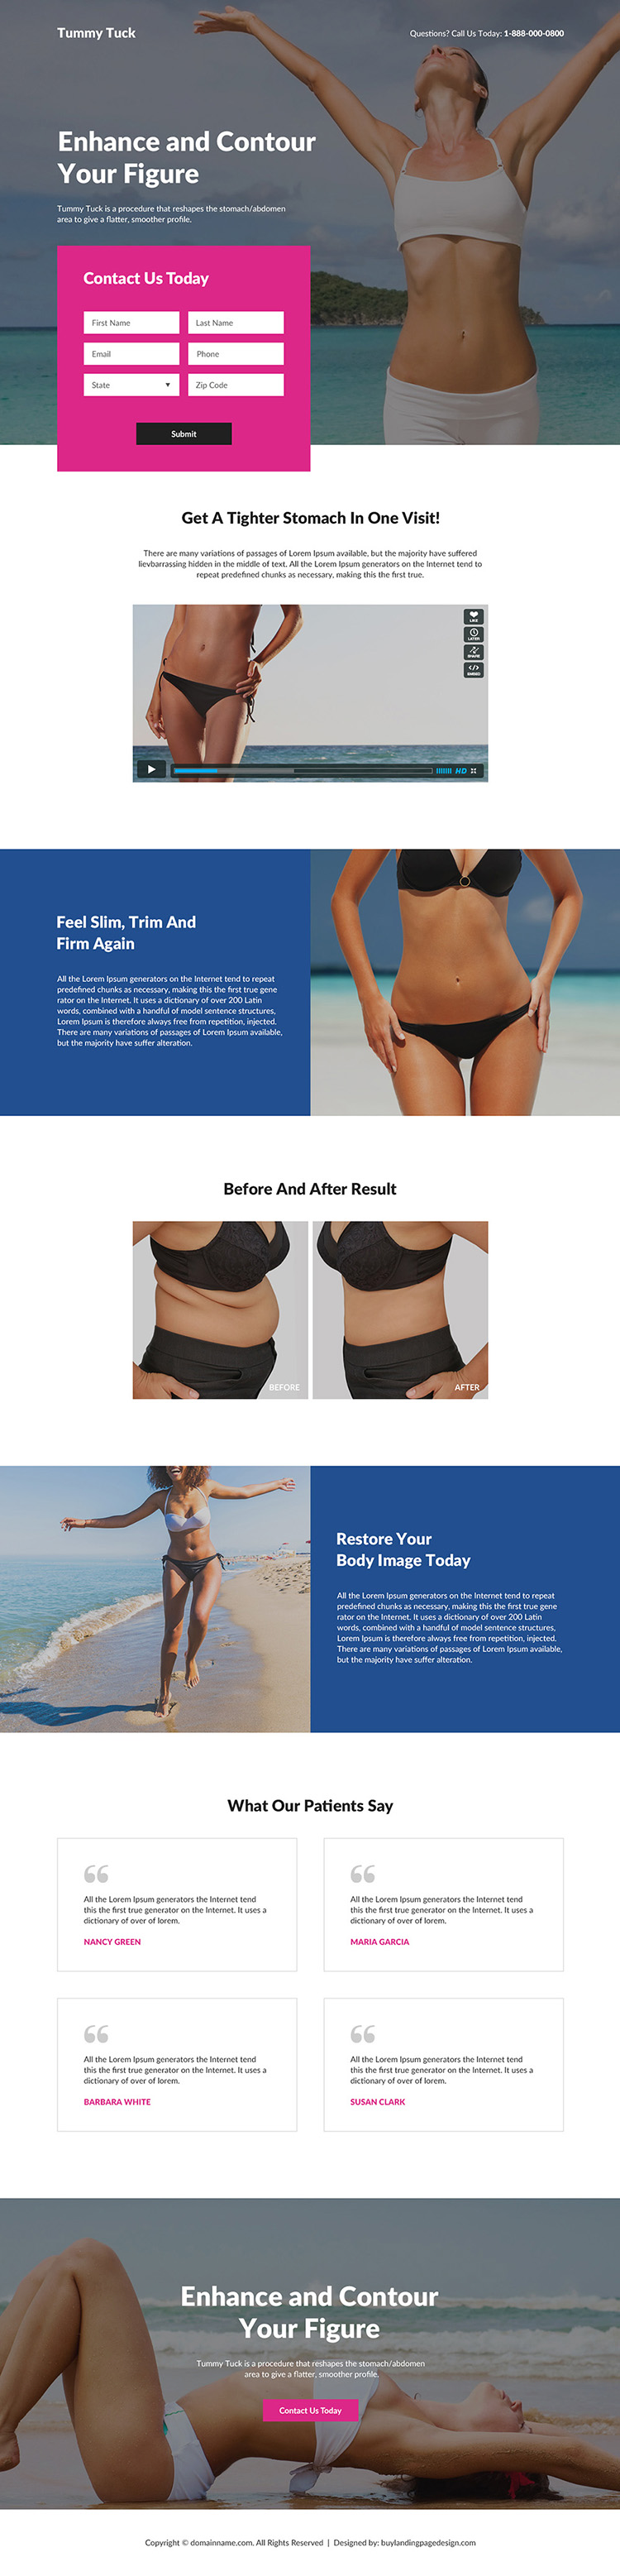 tummy tuck cosmetic surgery responsive landing page